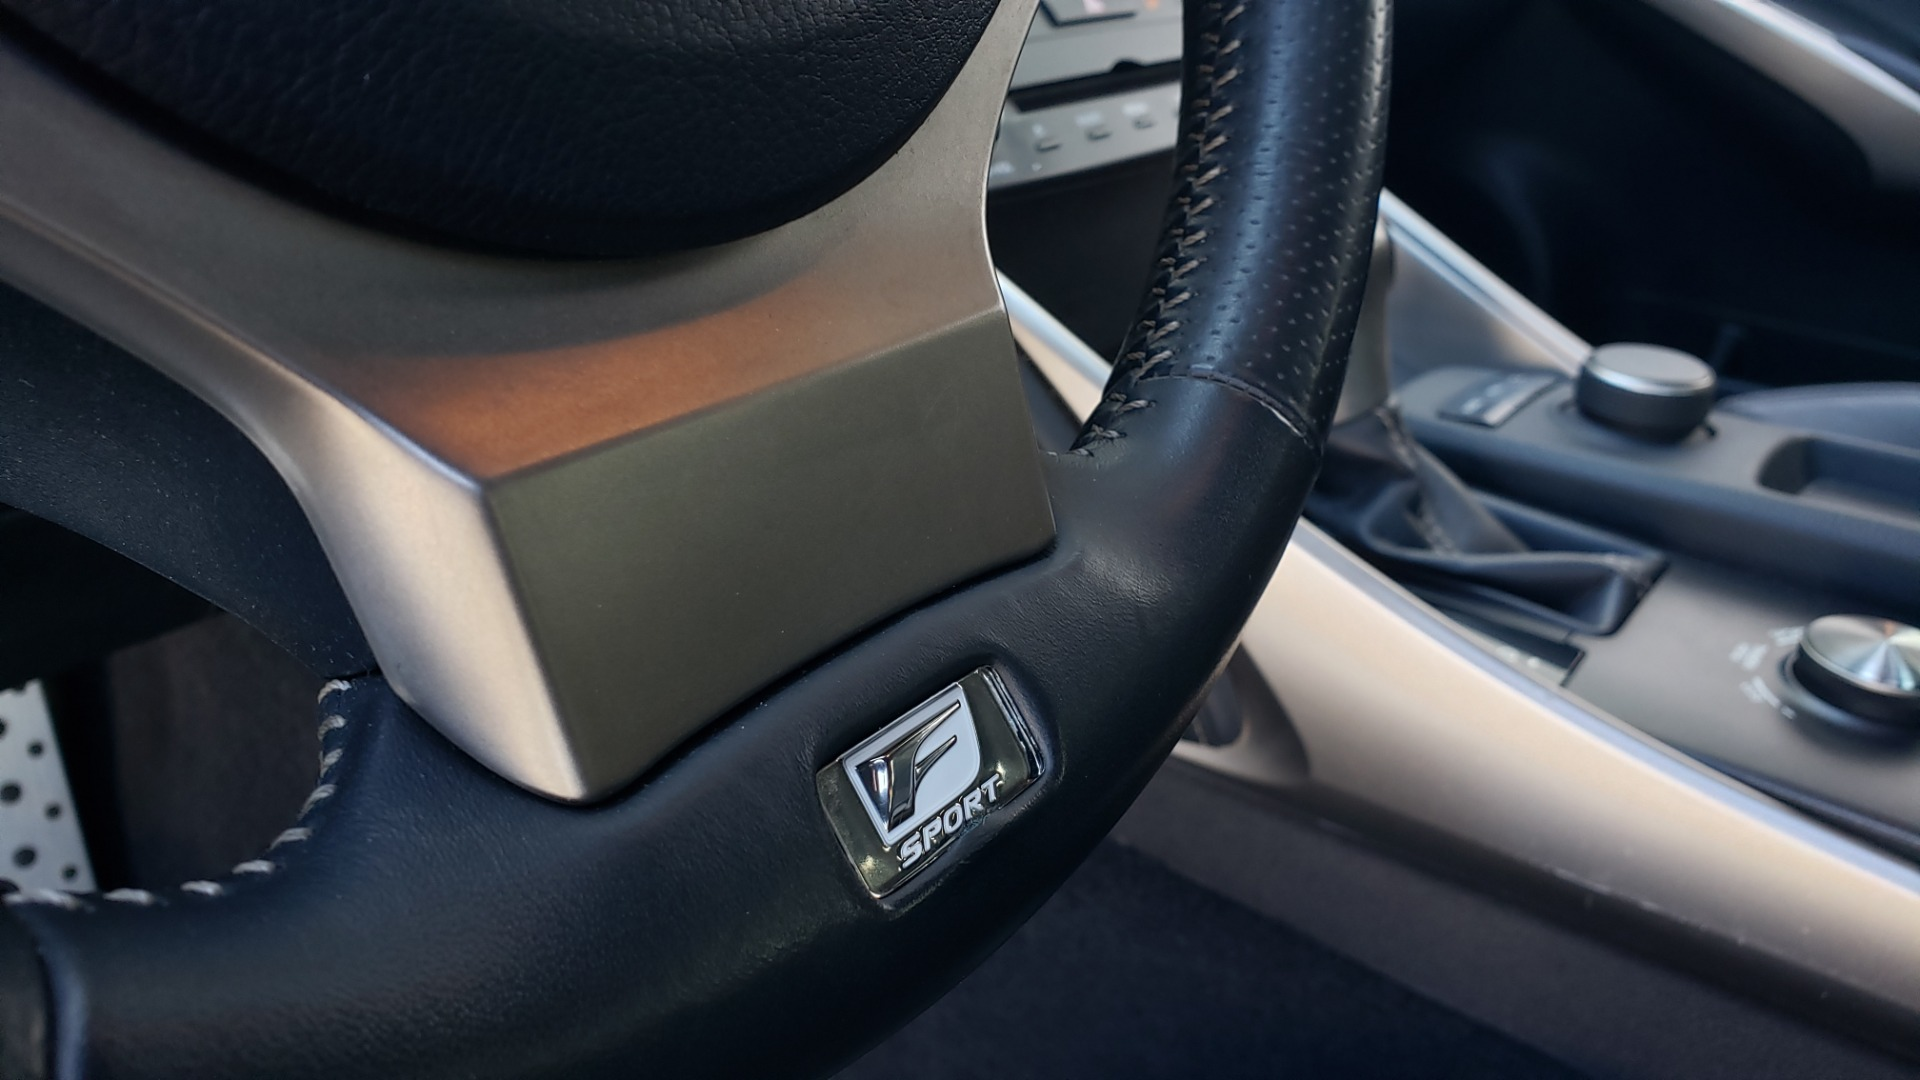 Used 2015 Lexus IS 250 F-SPORT / BSM / SUNROOF / VENT SEATS / REARVIEW for sale Sold at Formula Imports in Charlotte NC 28227 39